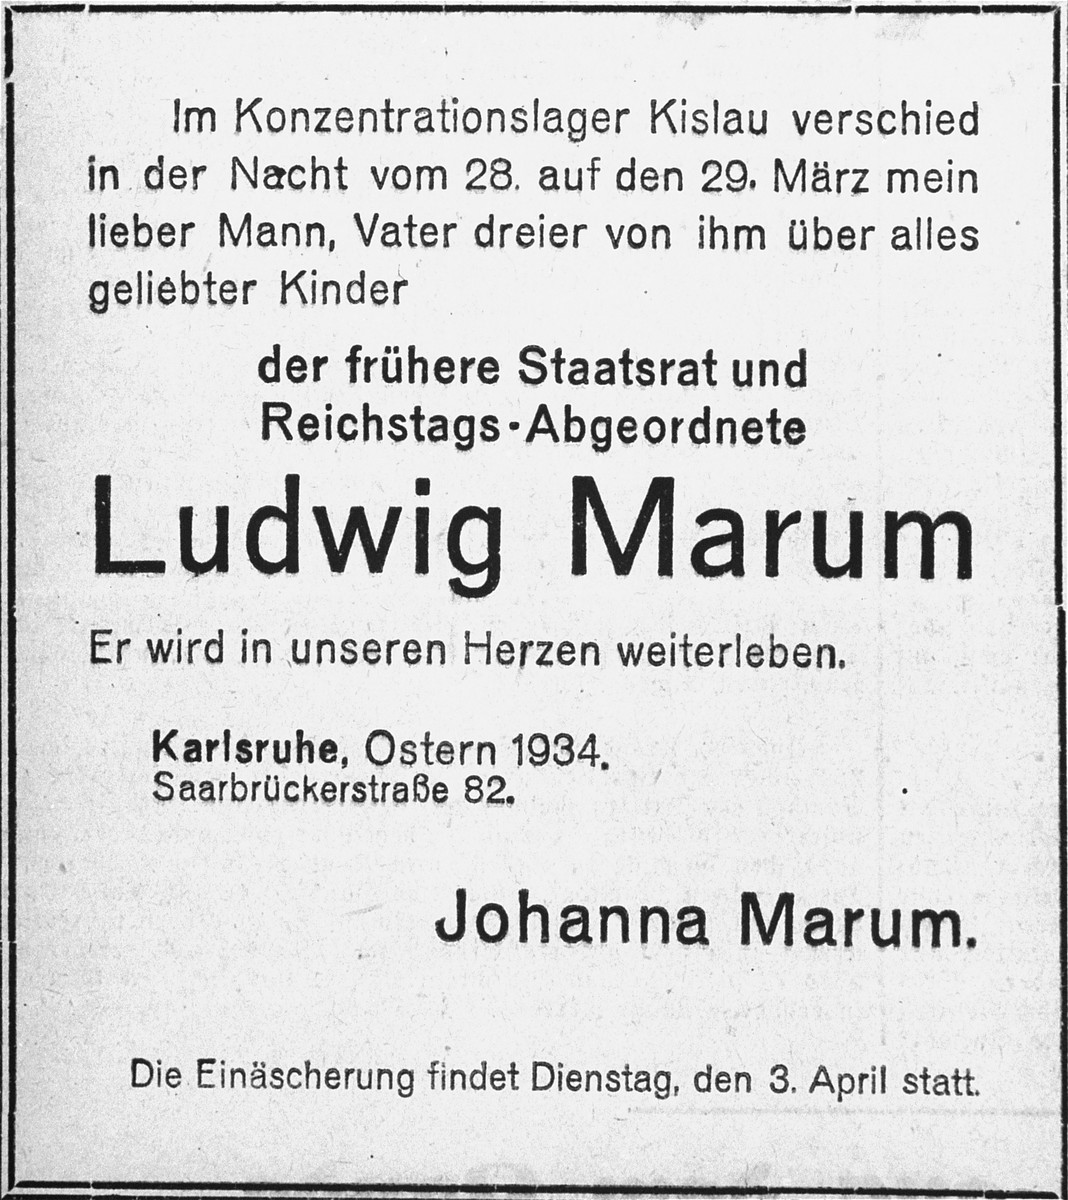 """An obituary notice in the Badische Presse for Ludwig Marum.    The notice reads: """"In the Kissau concentration camp on the night of March 28-29, 1934, my dear husband, father of three beloved children died -- former state councillor and member of Parliament: Ludwig Marum, who will always remain in our hearts.  The cremation will take place on Tuesday April 3, 1934."""""""